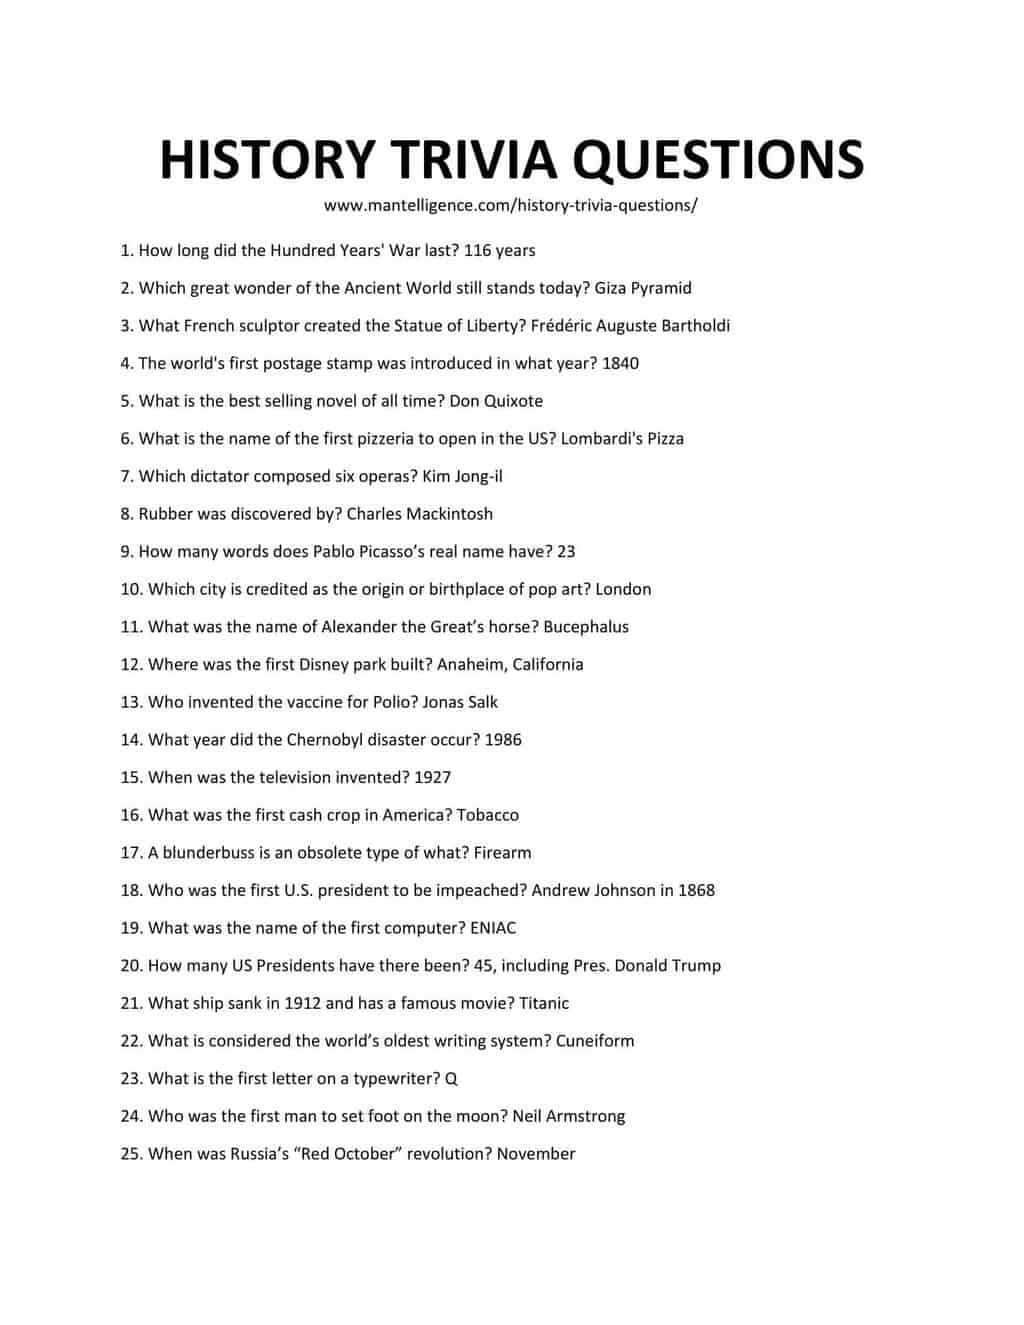 Downloadable and Printable List of History Trivia Questions